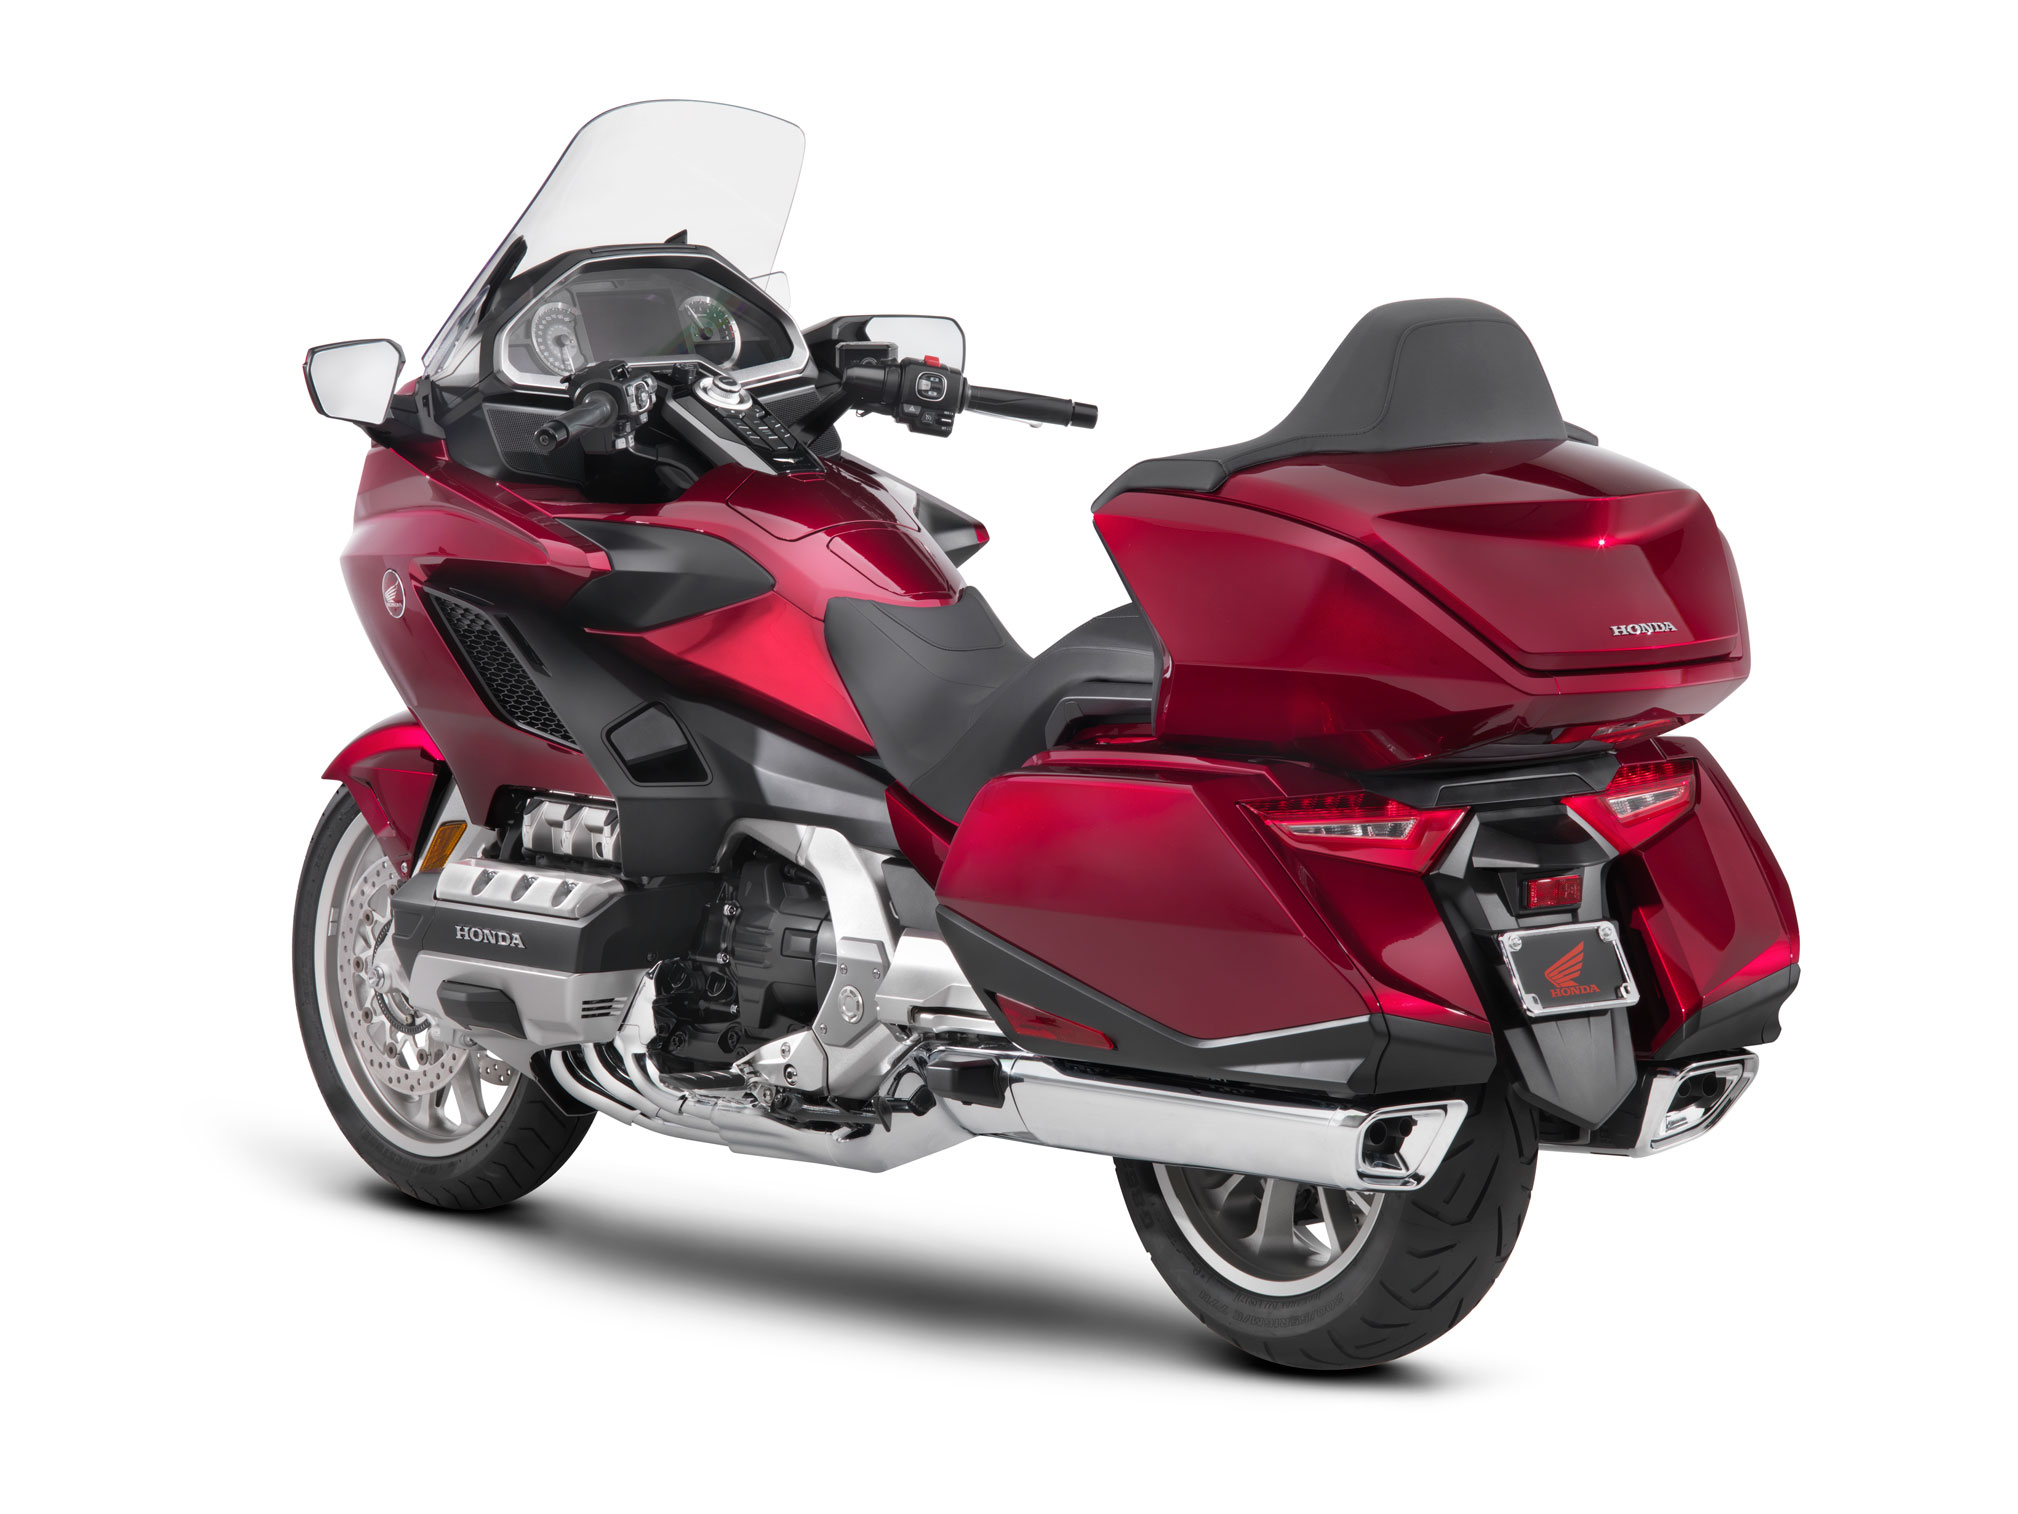 2018 Honda Gold Wing Tour Review Totalmotorcycle